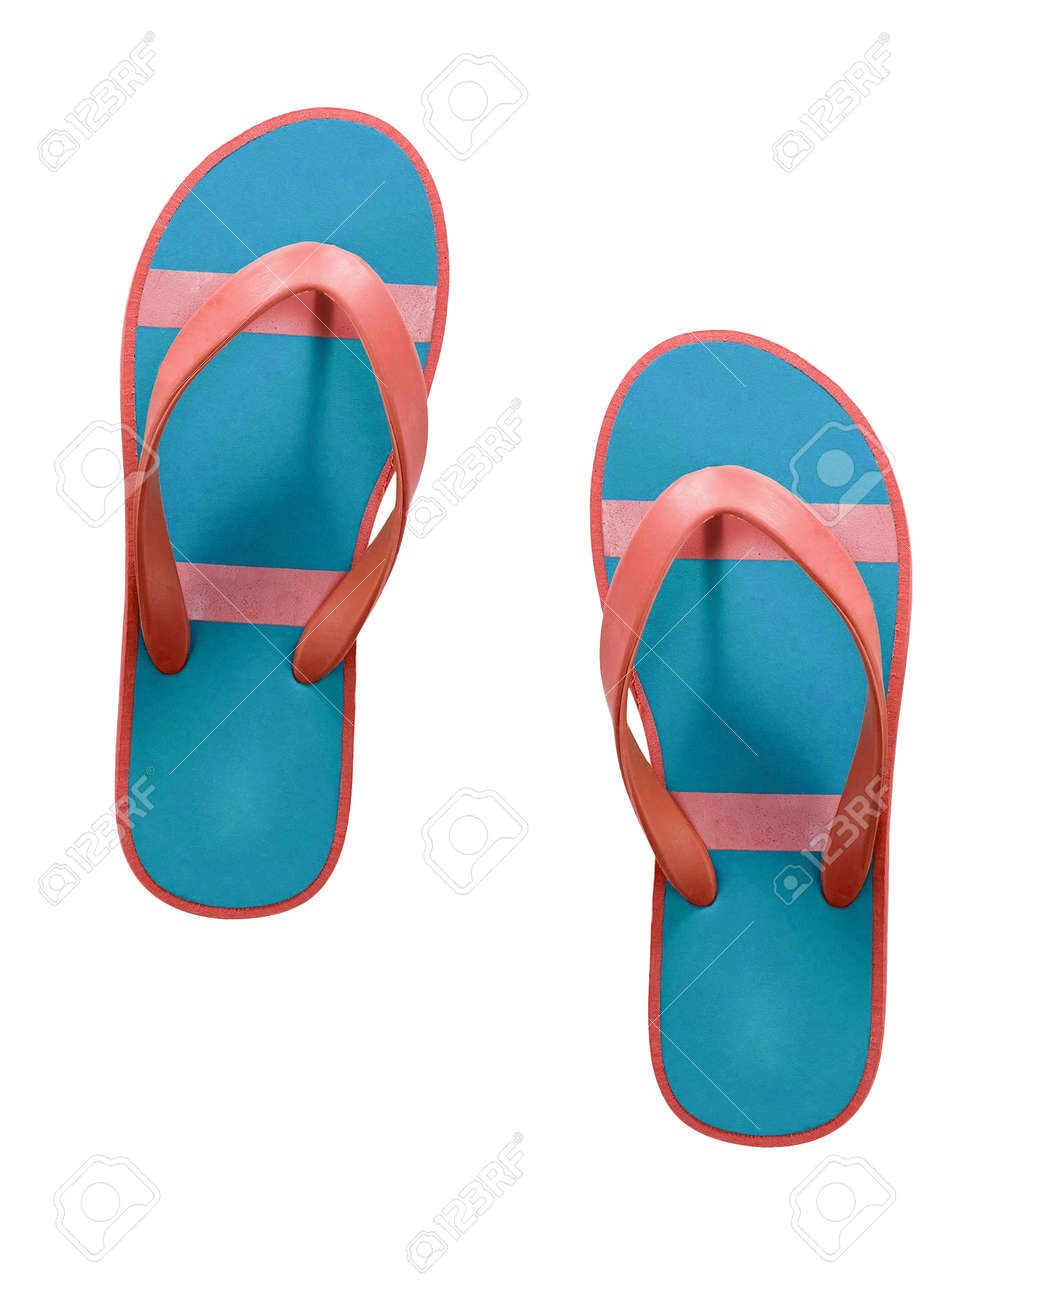 cdba2595590 red and blue flip flop sandals isolated Stock Photo - 47811589